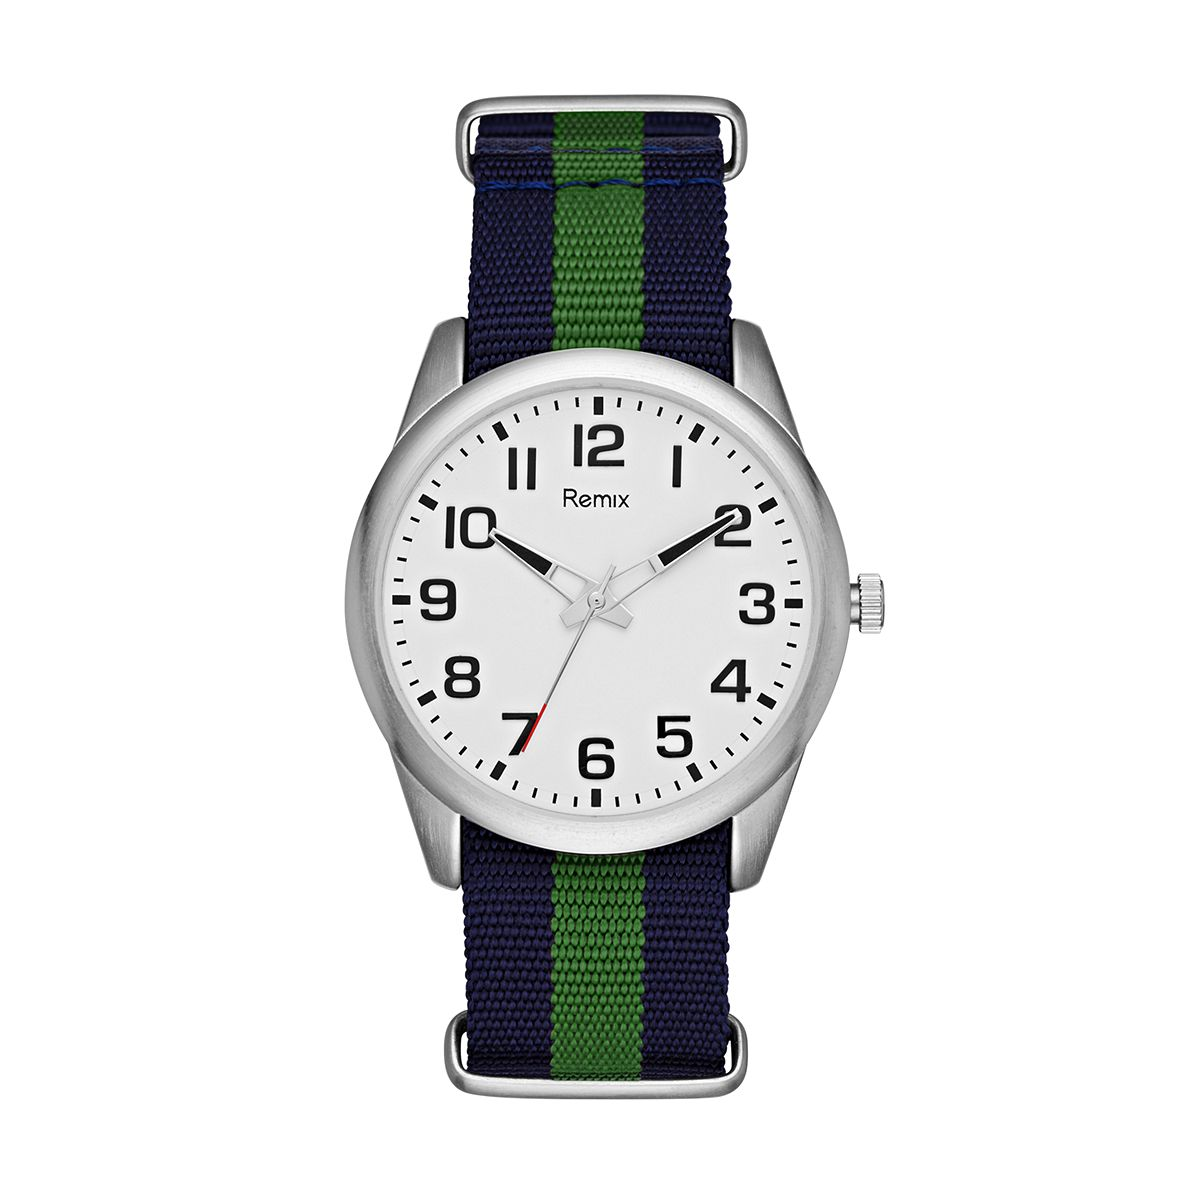 Navy & Green Nylon Strap  / Promotional product fully customized